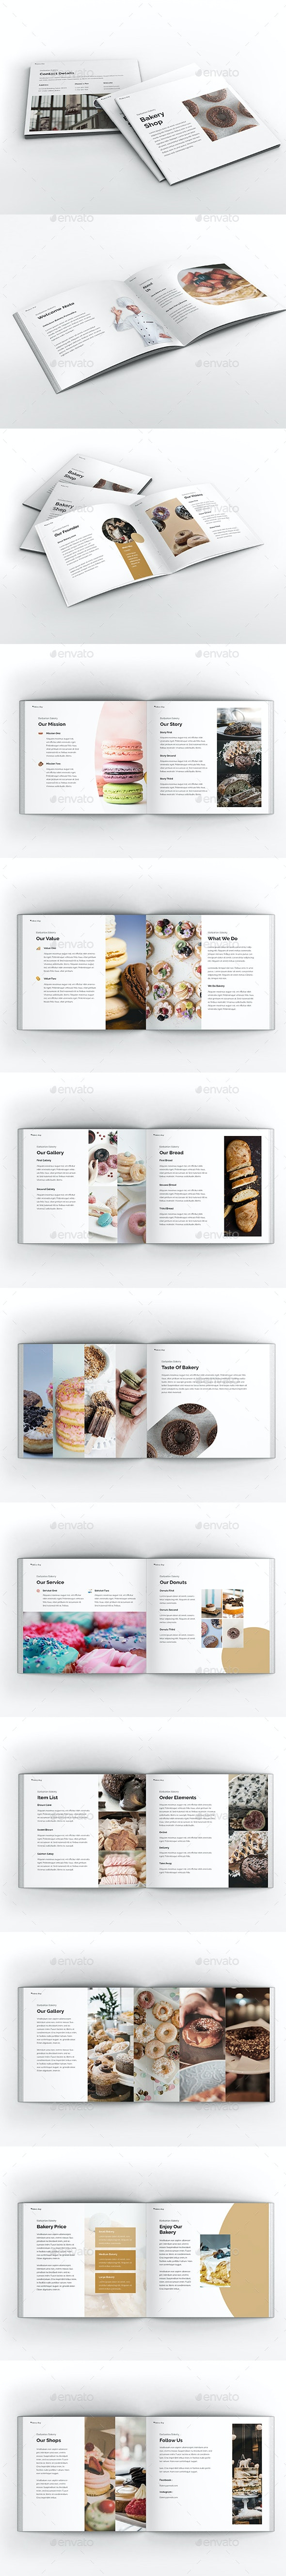 Bakery Square Brochure Template - Brochures Print Templates